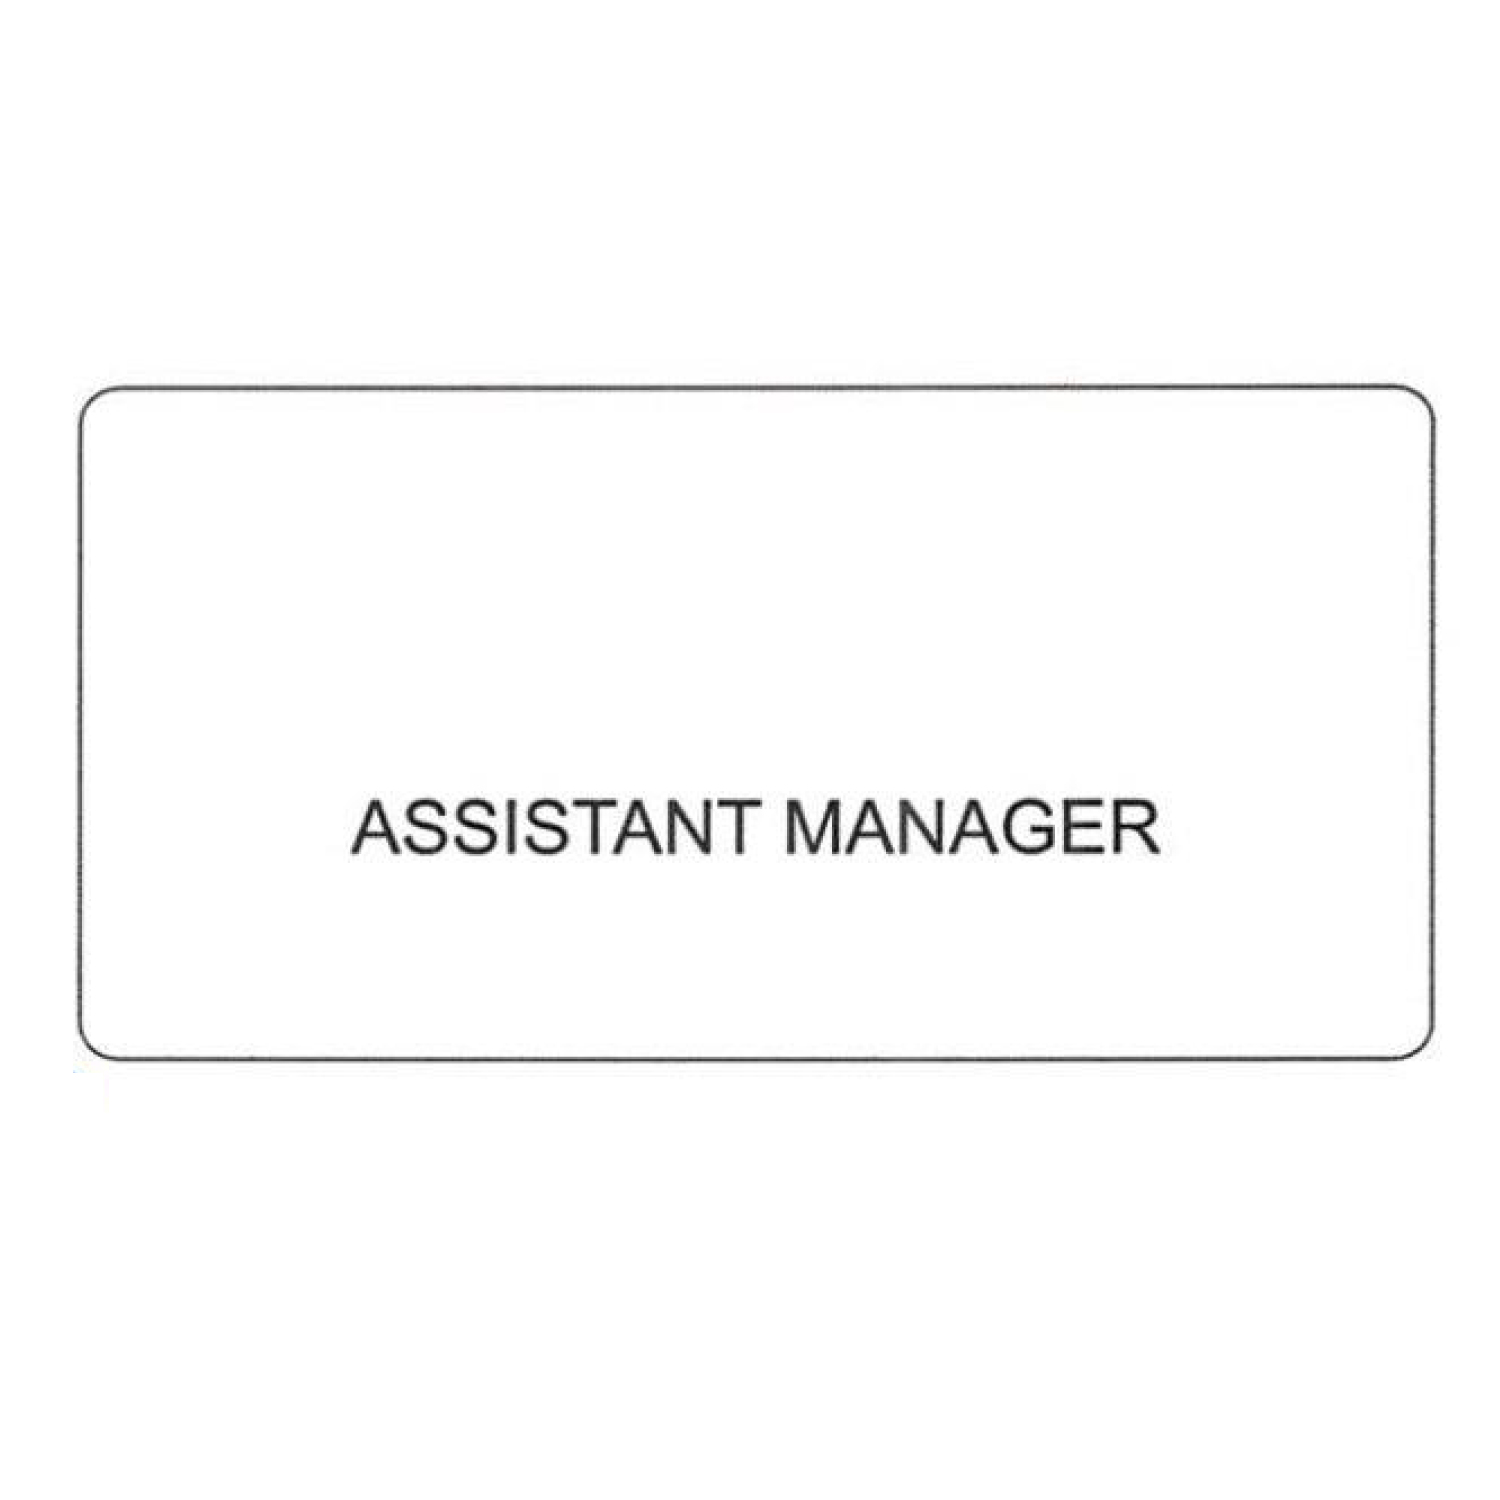 """SCSW NAME BADGE """"ASSISTANT MANAGER"""""""